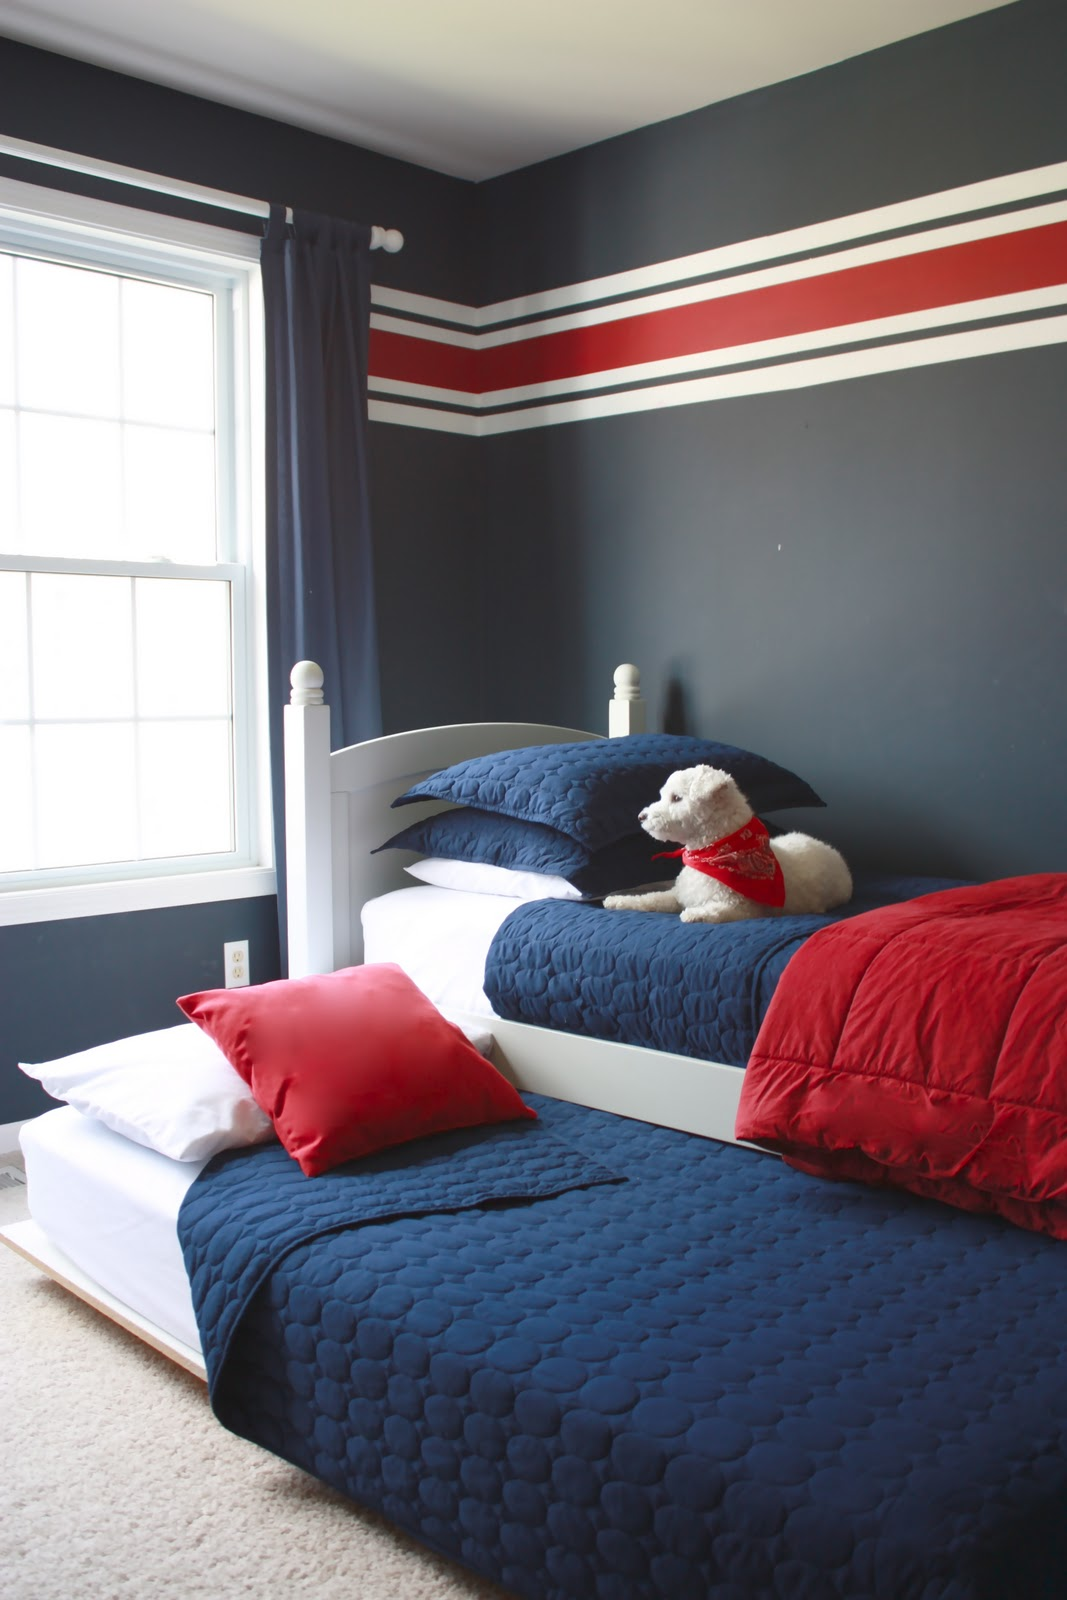 Bedroom Colors Blue And Red fine bedroom colors blue and red wonderfully made shared